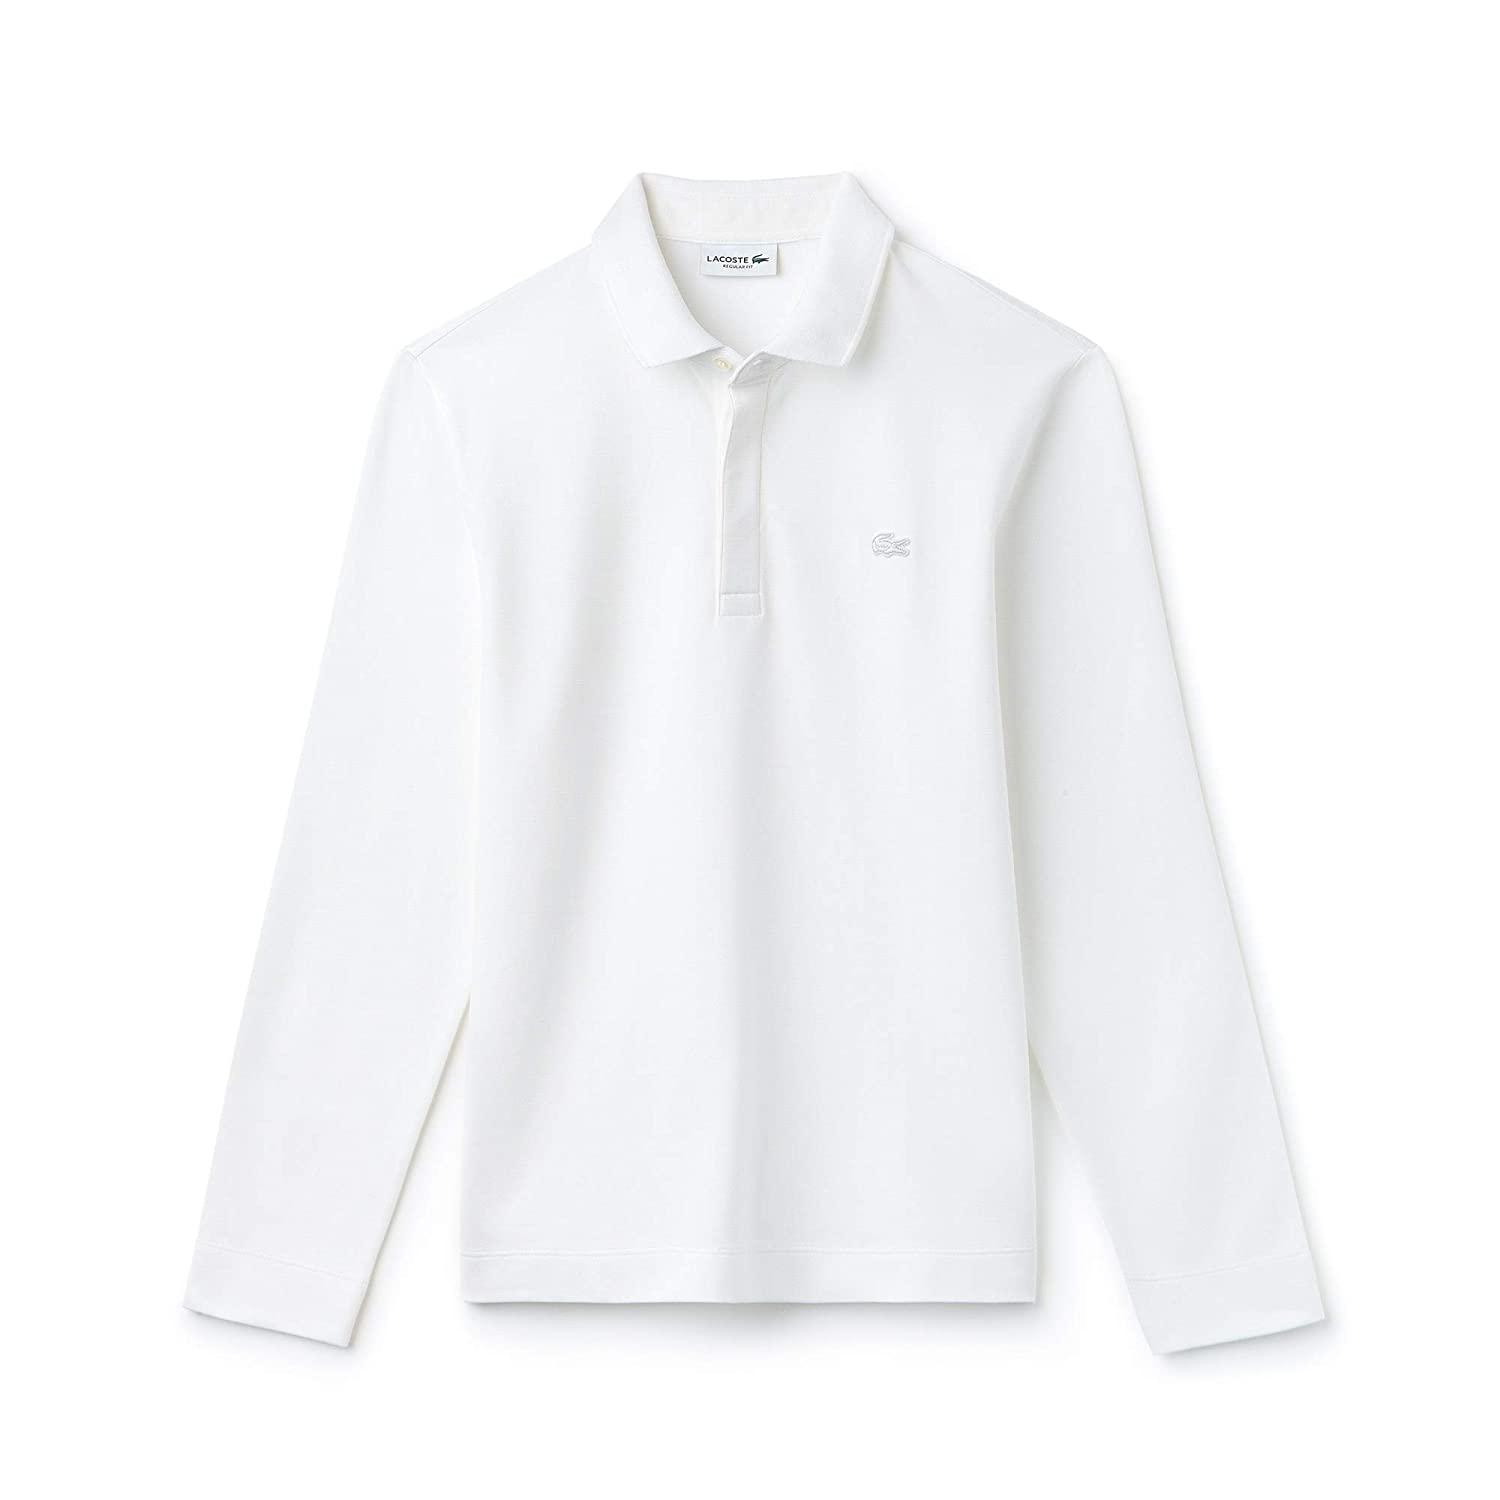 Blanc (blanc 001) grand  Lacoste Polo Homme